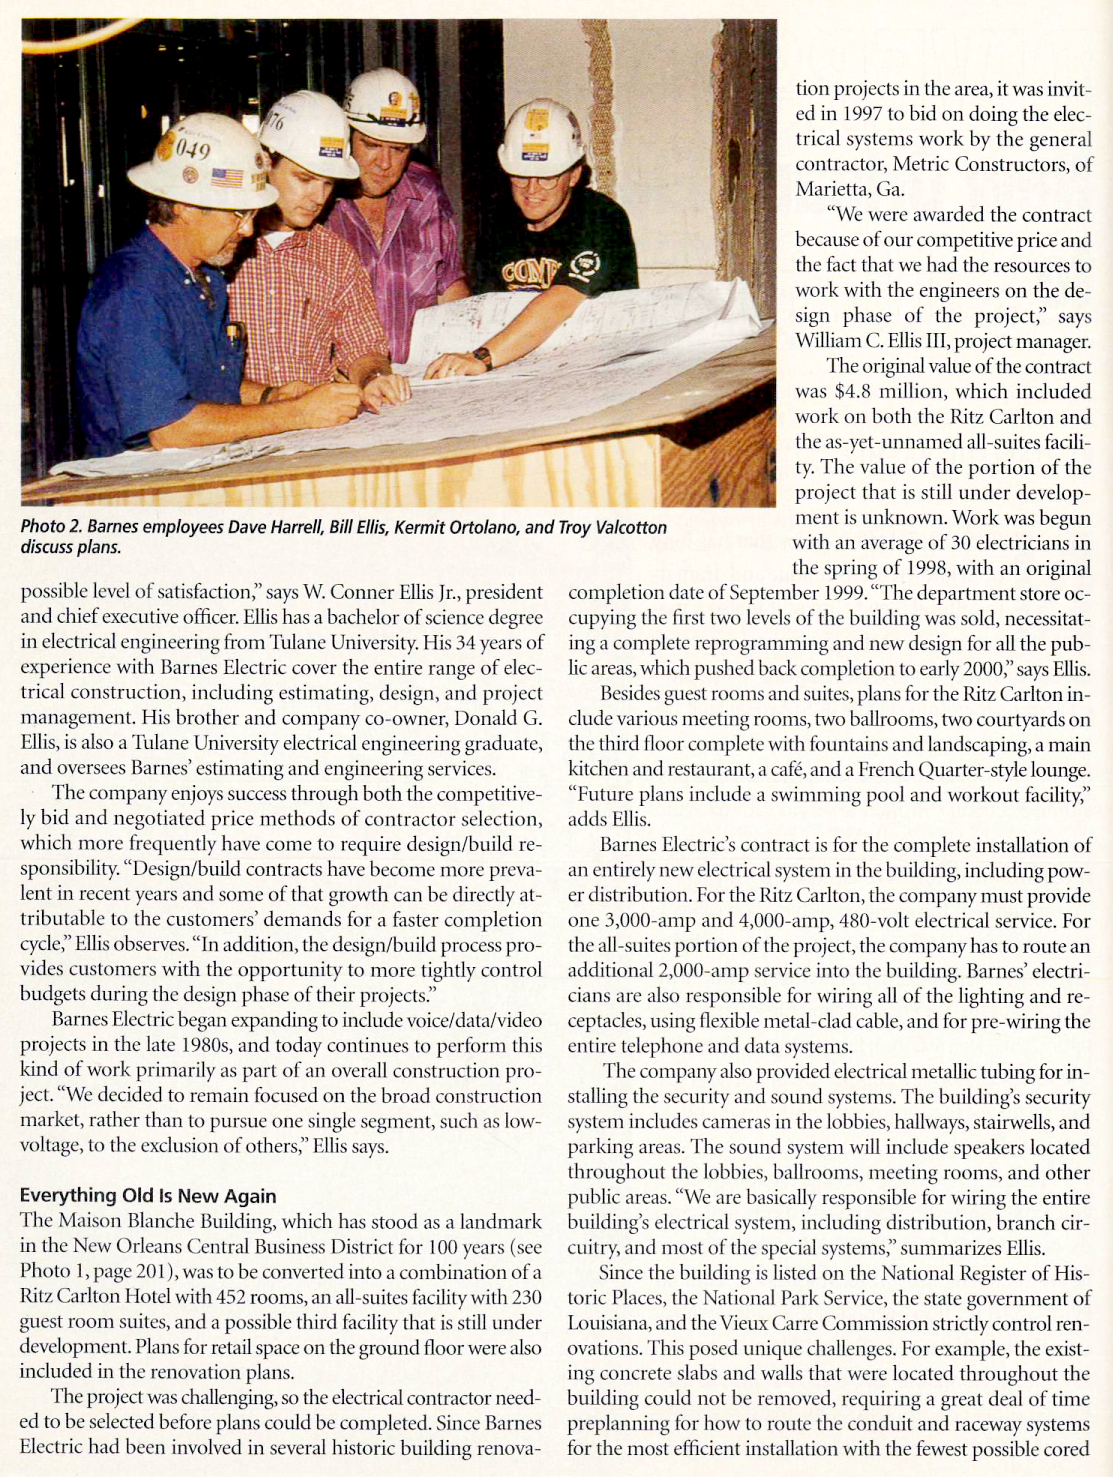 Electrical Contractor Magazine Article - Page 2